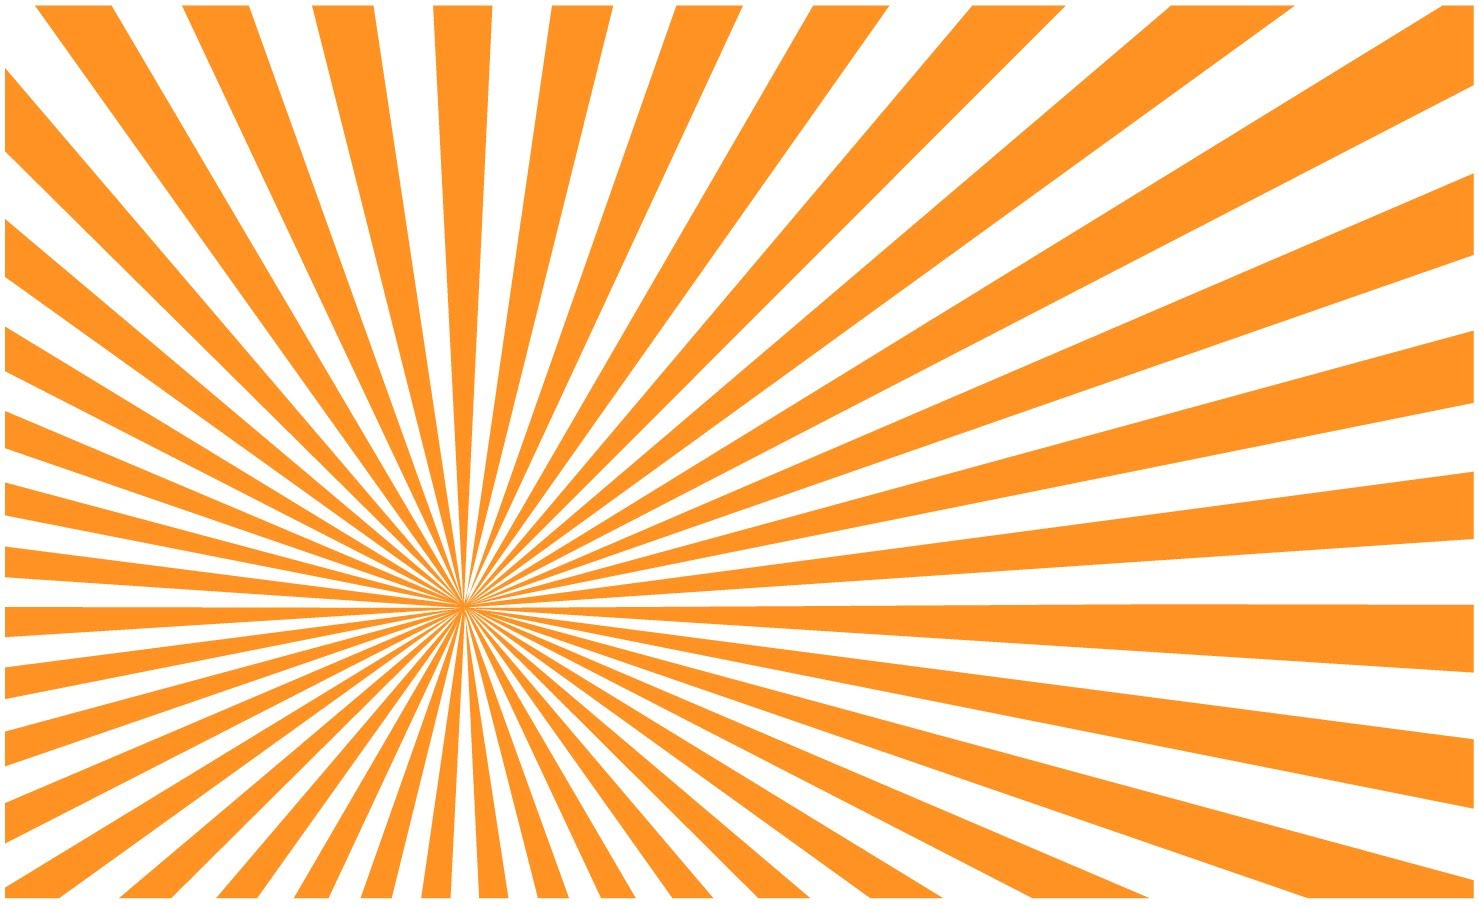 Illustrator tutorial: Create a Vector Sunburst Quickly and Easily.